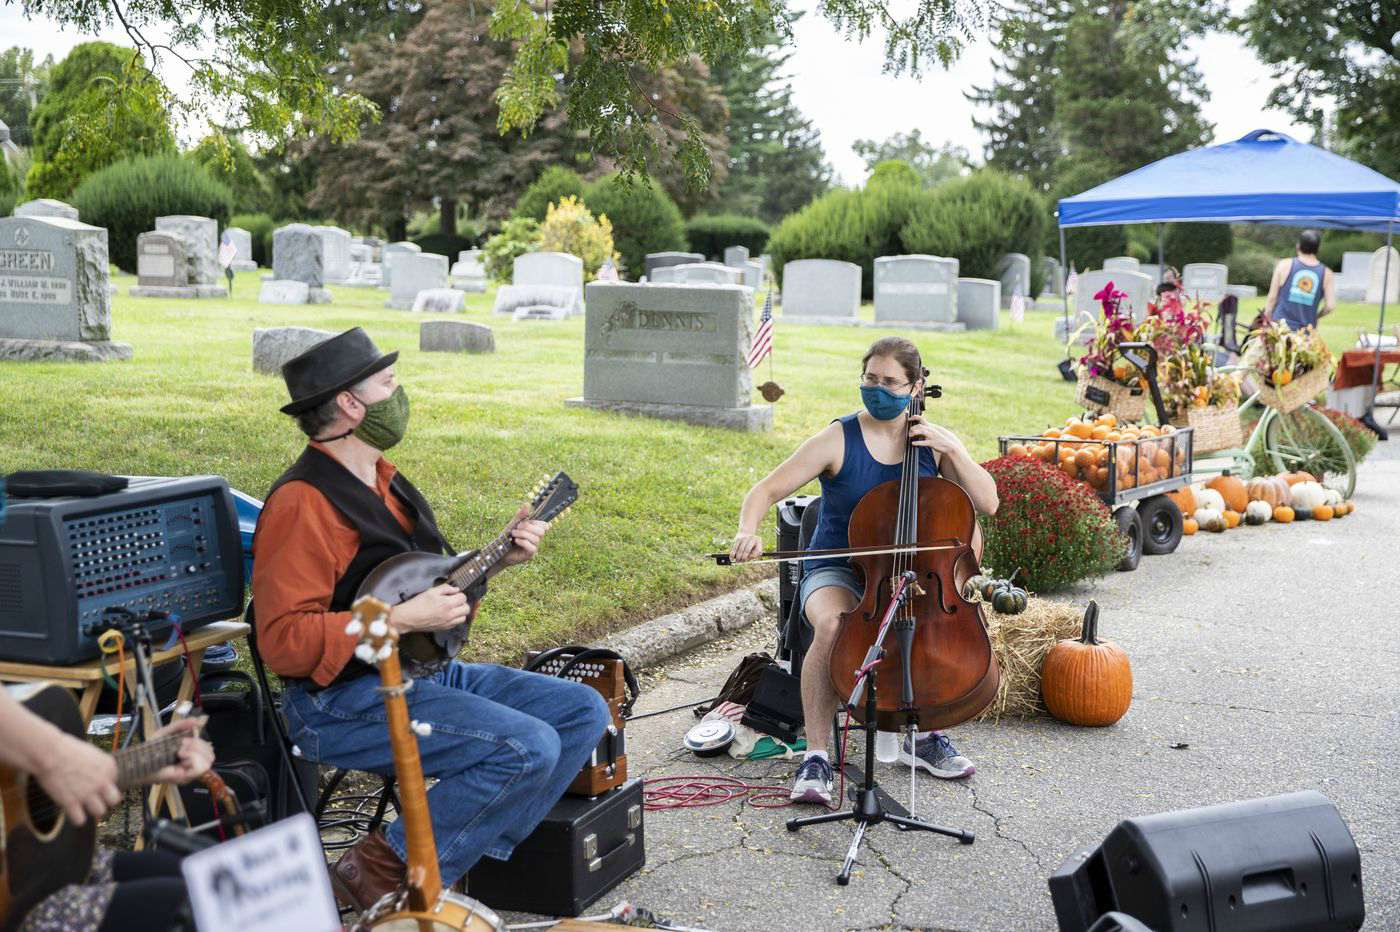 GreenHorn Gardens at Arlington Cemetery Joined by Musicians and Other Vendors at Pop Up Market